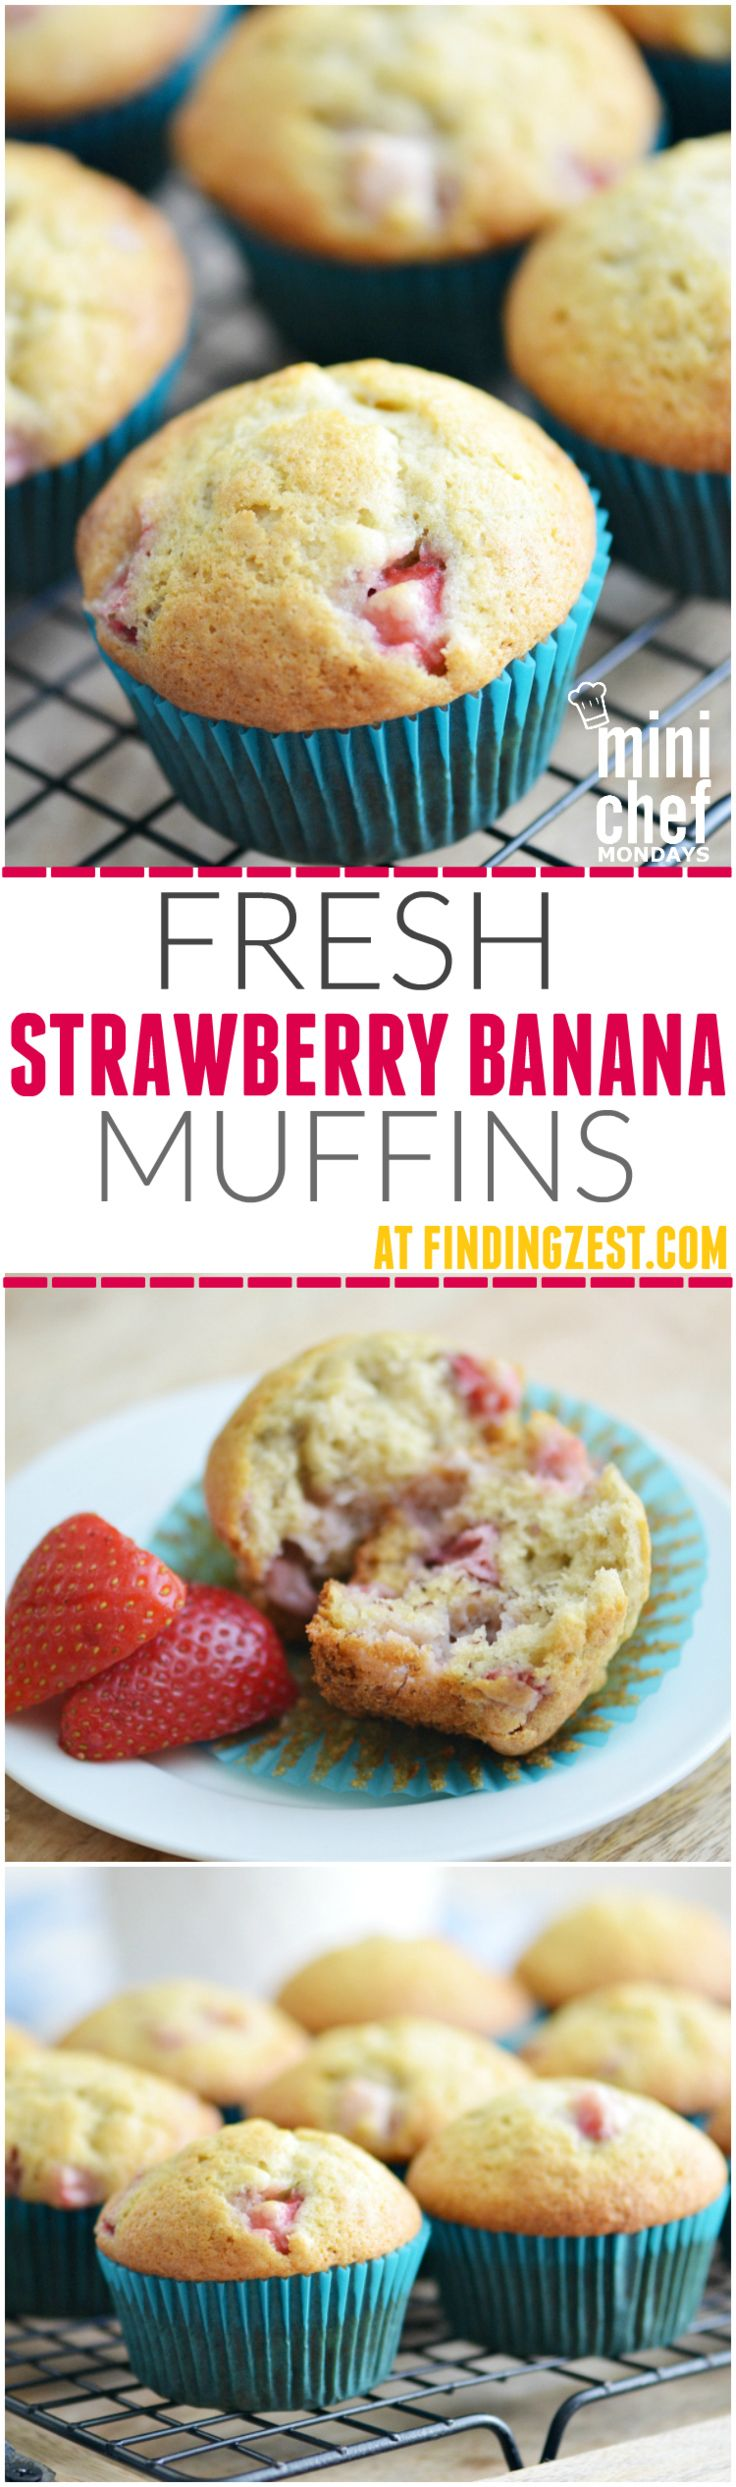 Fresh Strawberry Banana Muffins